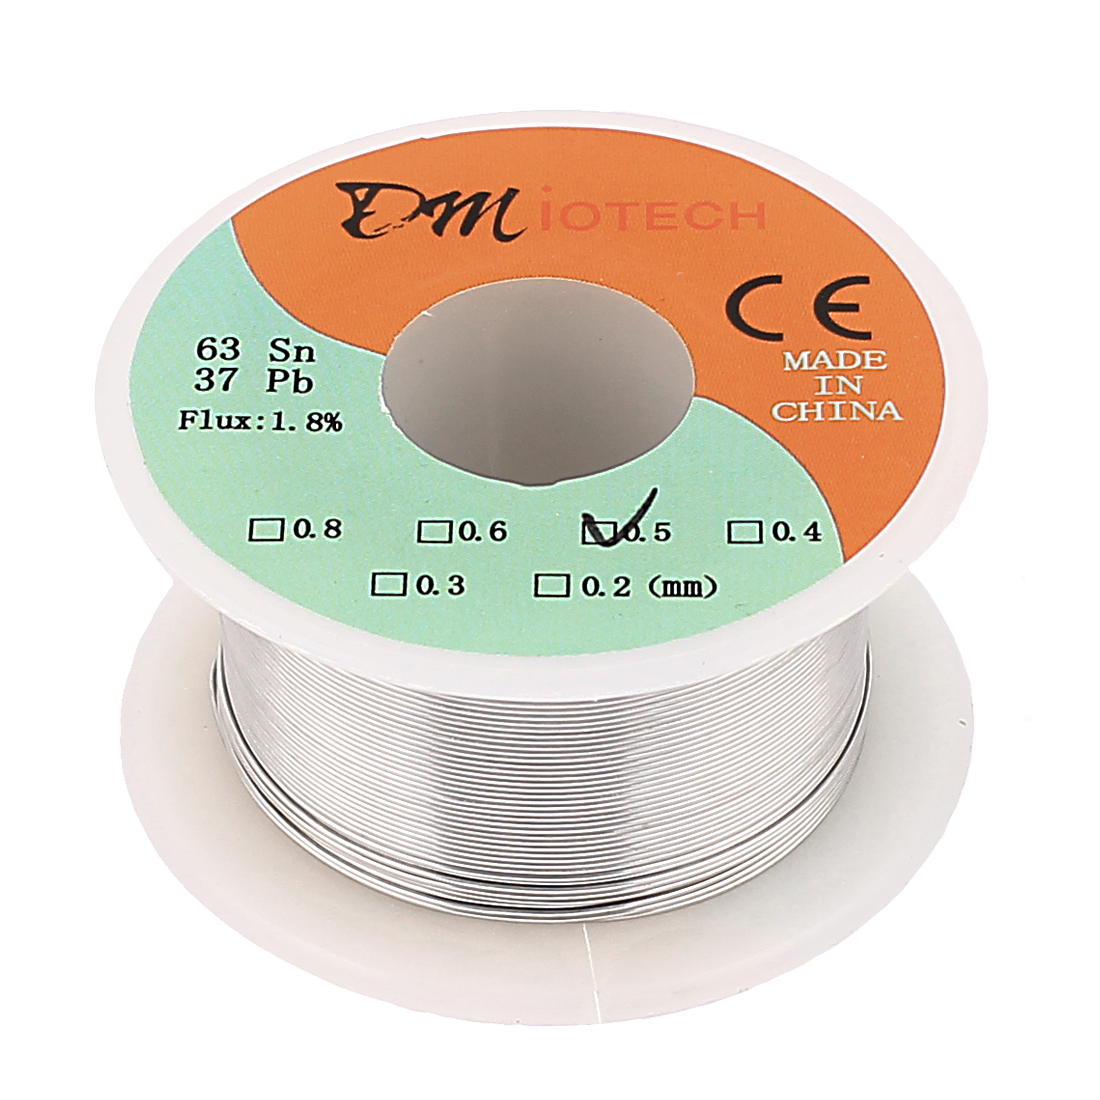 0.5mm 35G 63/37 Rosin Core Flux 1.8% Tin Lead Roll Soldering Wire